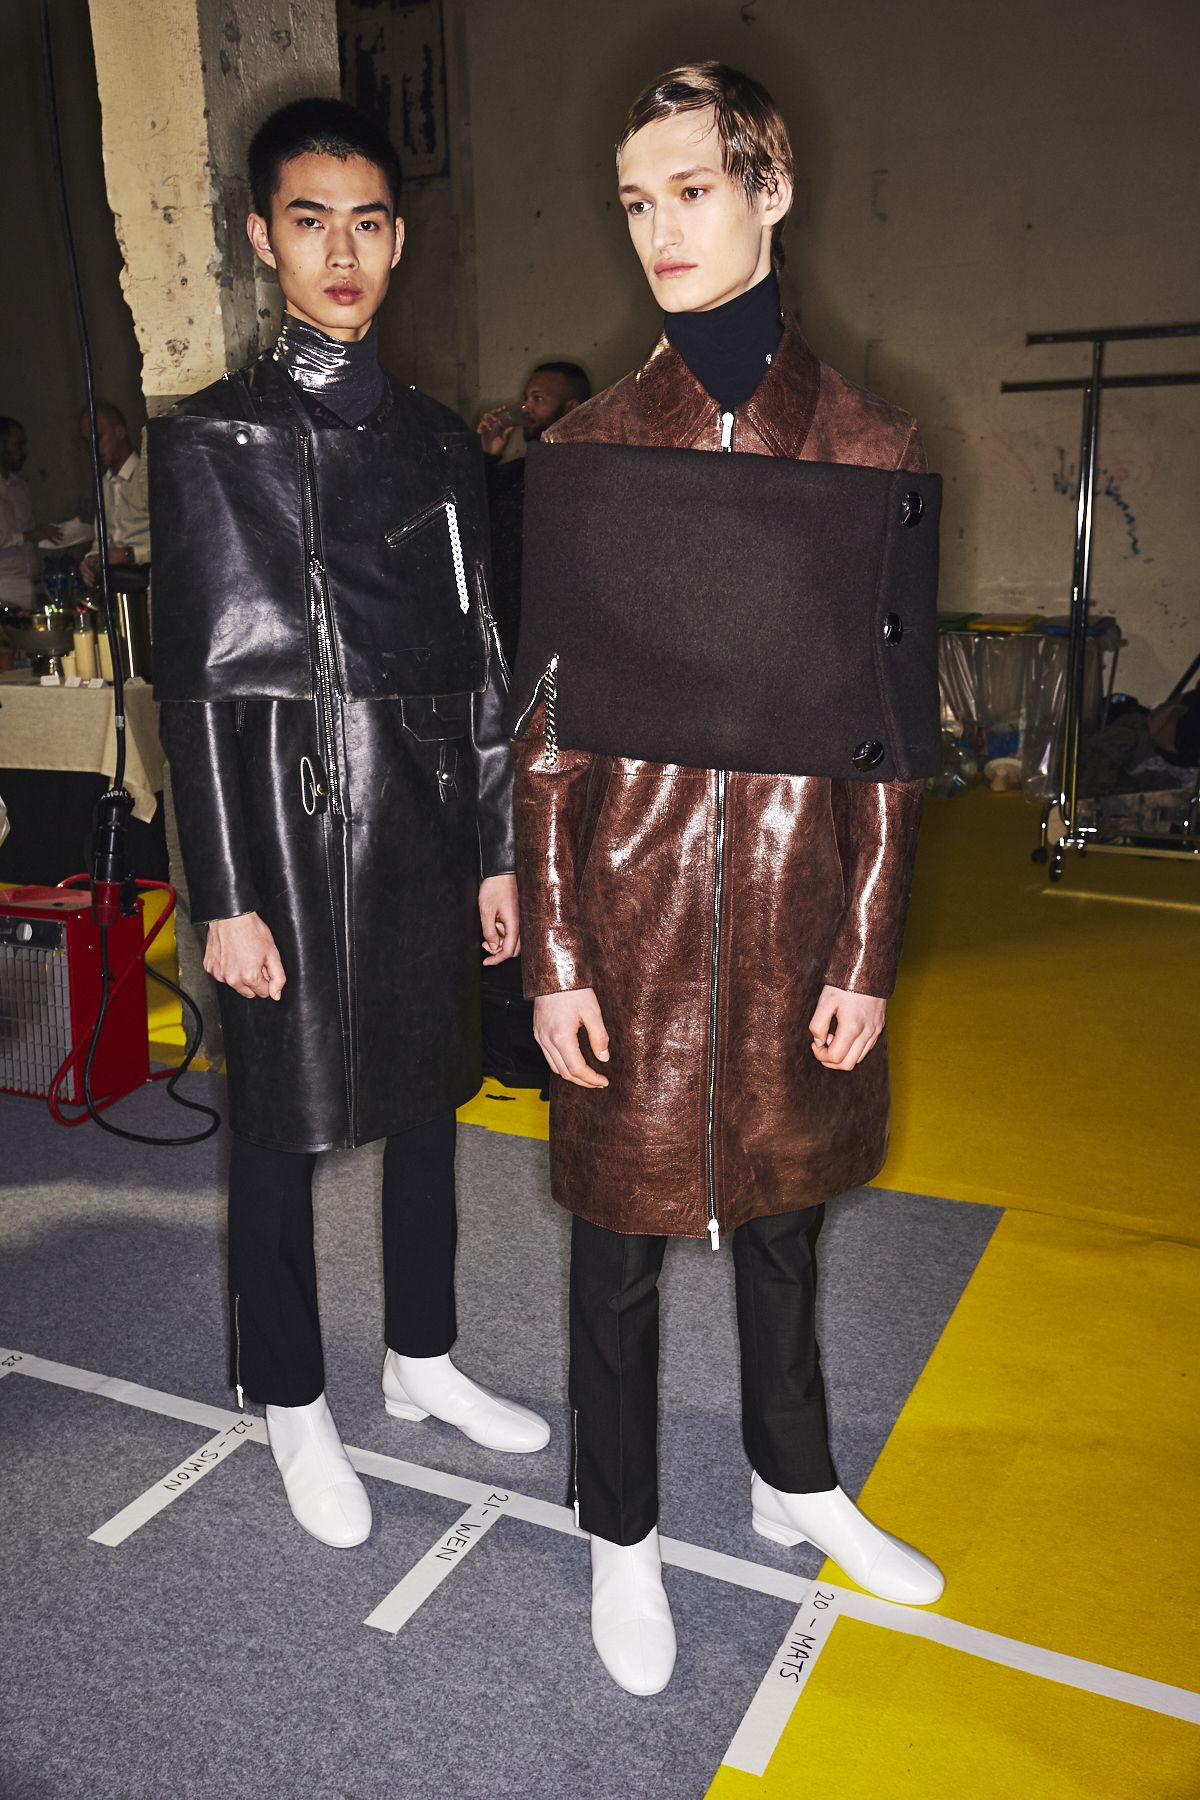 First Look Raf Simons Men S F W 2020 Paris Fashion Week Exclusive Backstage Photos From Raf Simons Men S Fall Winter 2020